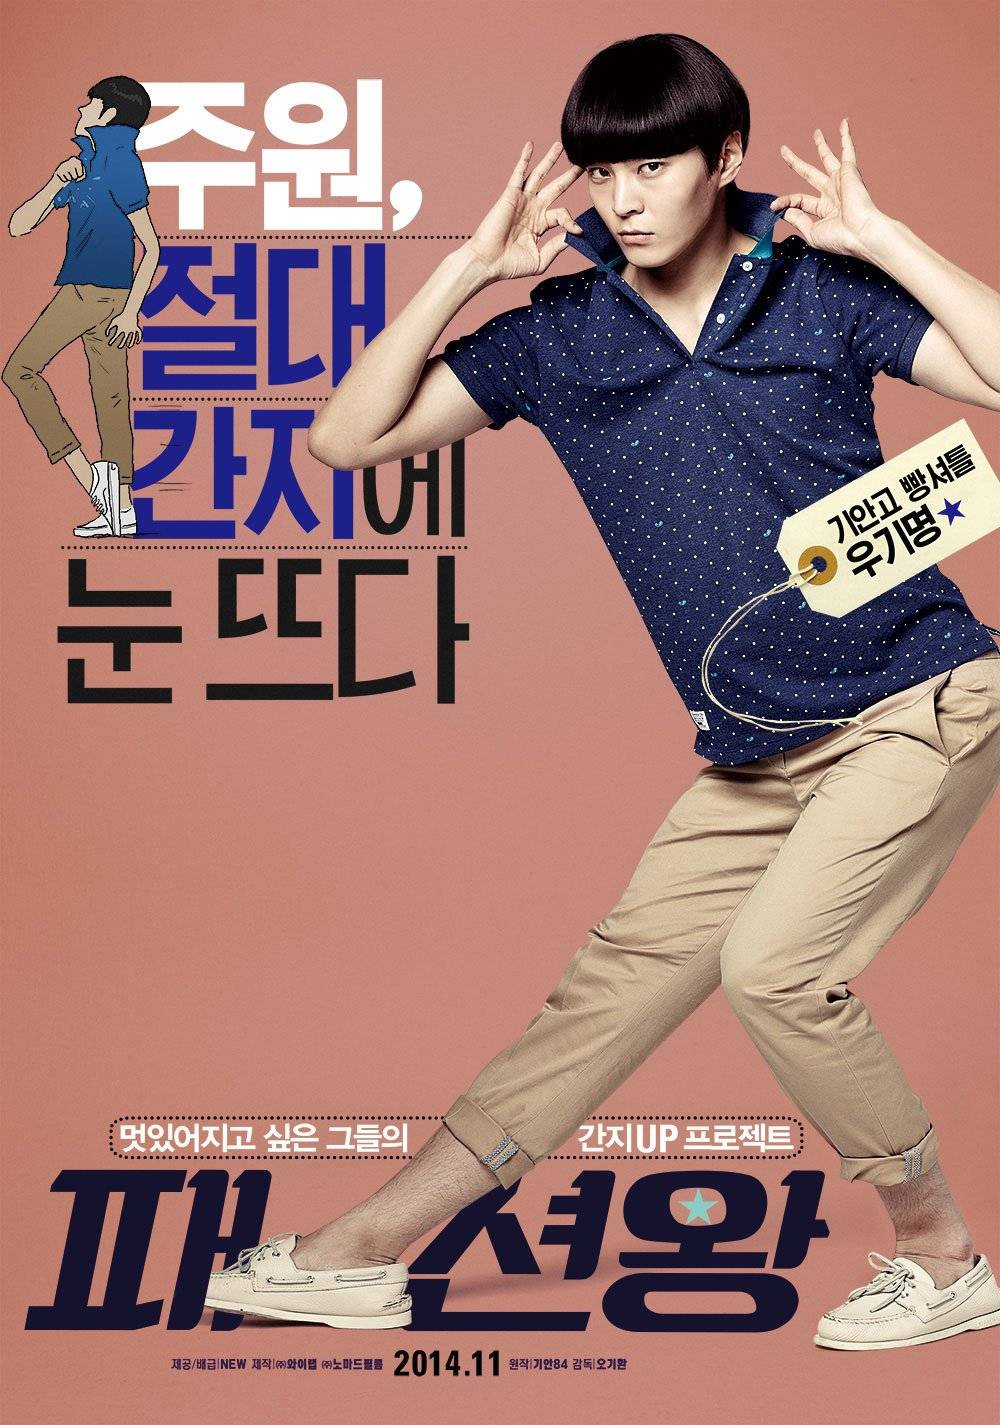 free, movie, download 2014, ryemovies, ganool, Fashion King (패션왕) 2014, film comedy korea, subtitle indonesia, Won Joo, Jae-Hyeon Ahn, Sulli Choi